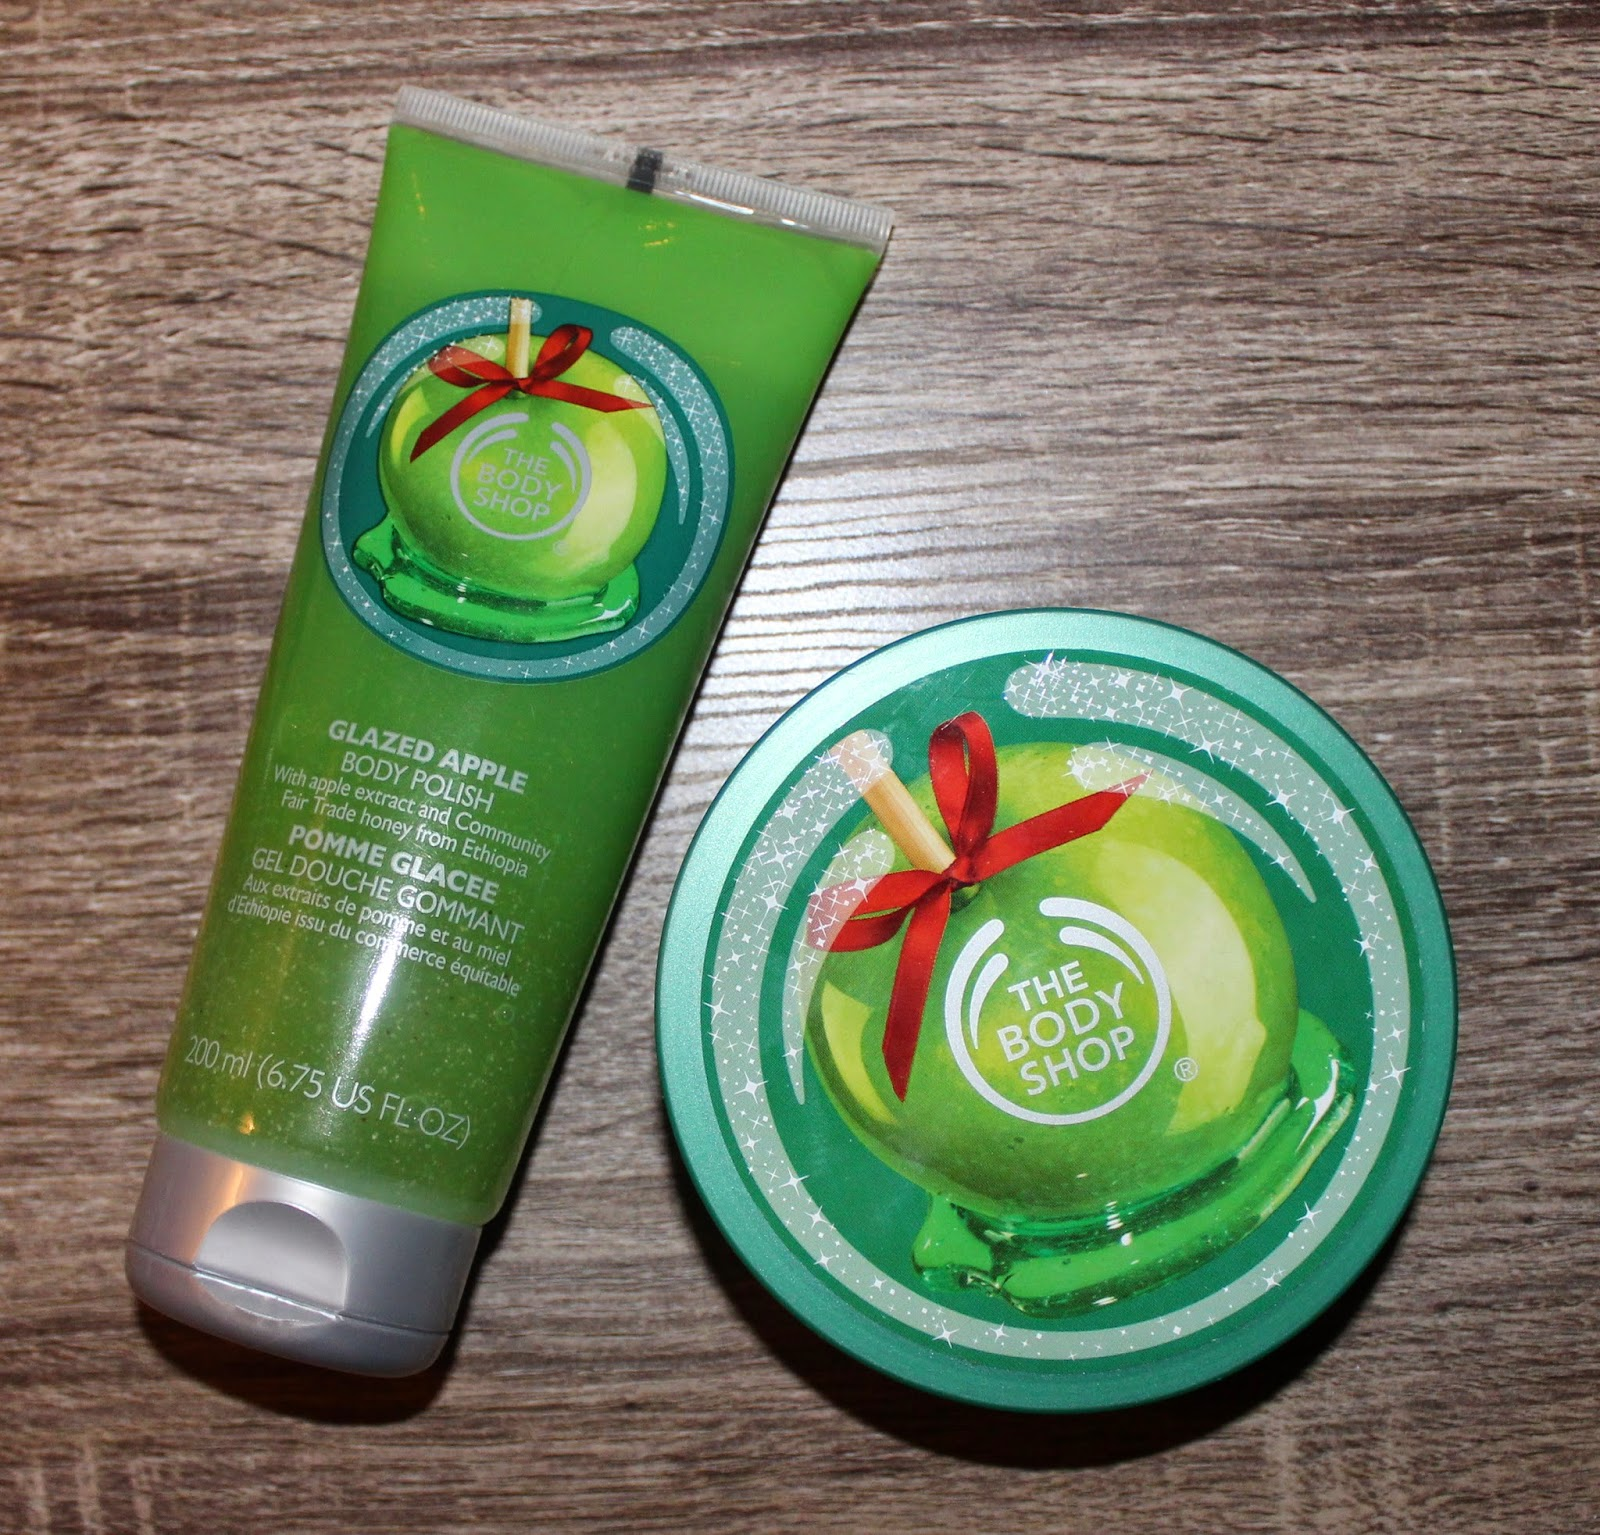 The Body Shop's Glazed Apple scent